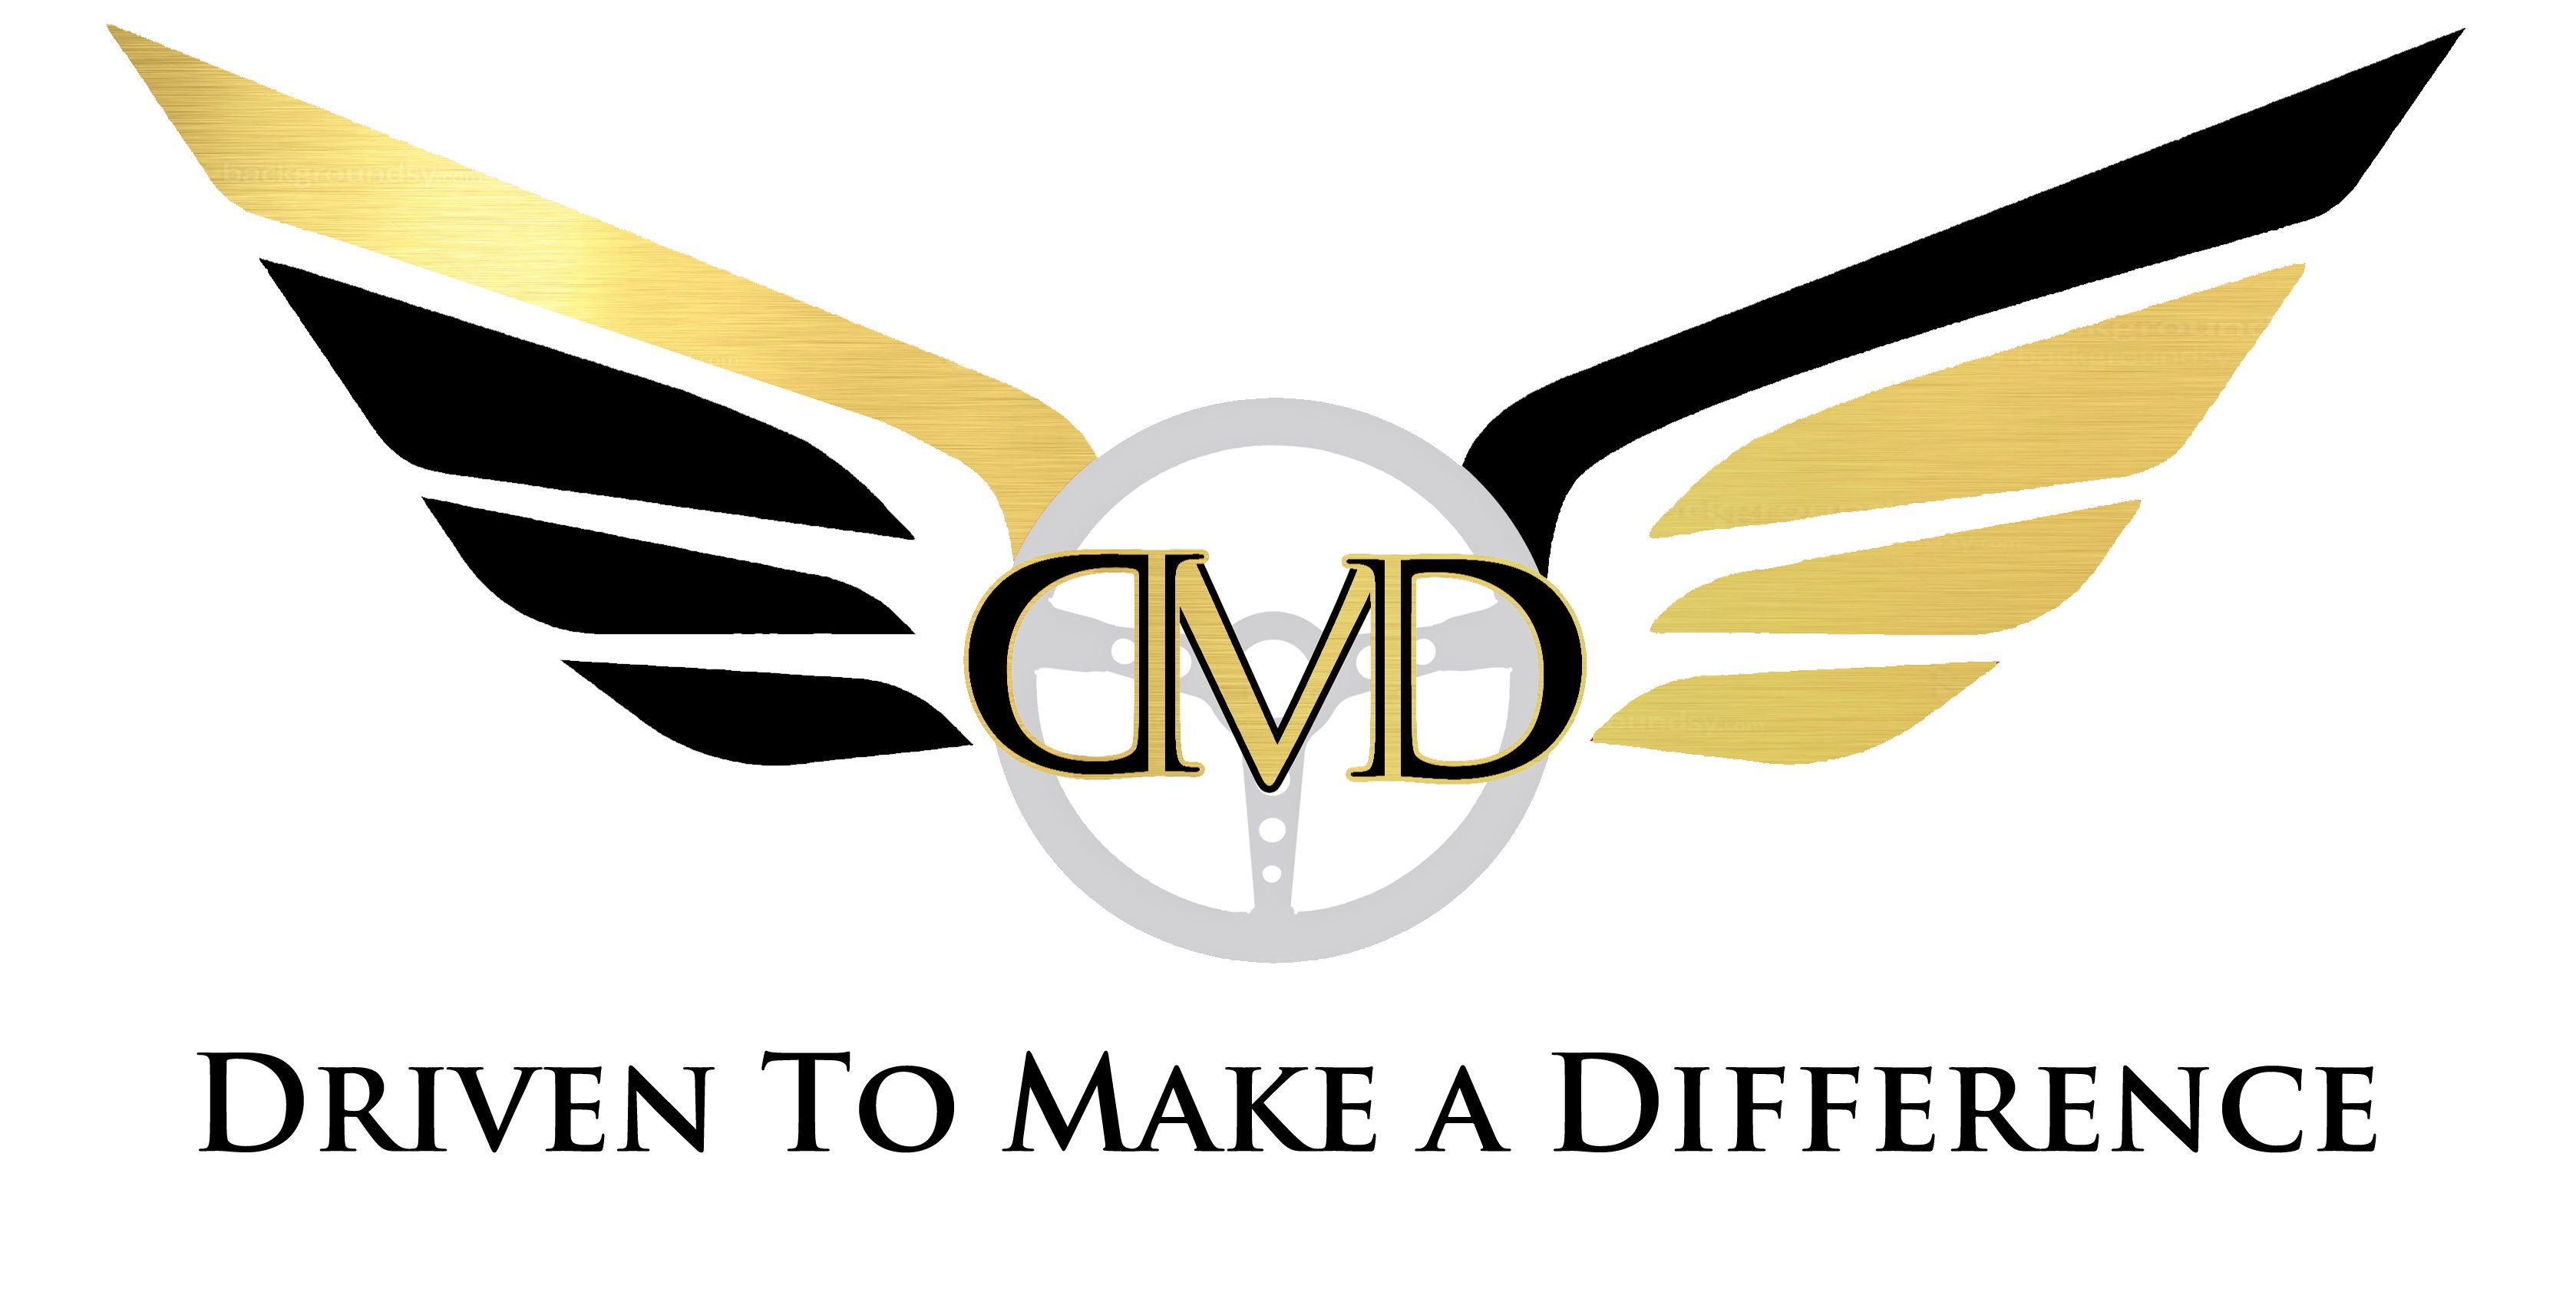 Driven To Make a Difference